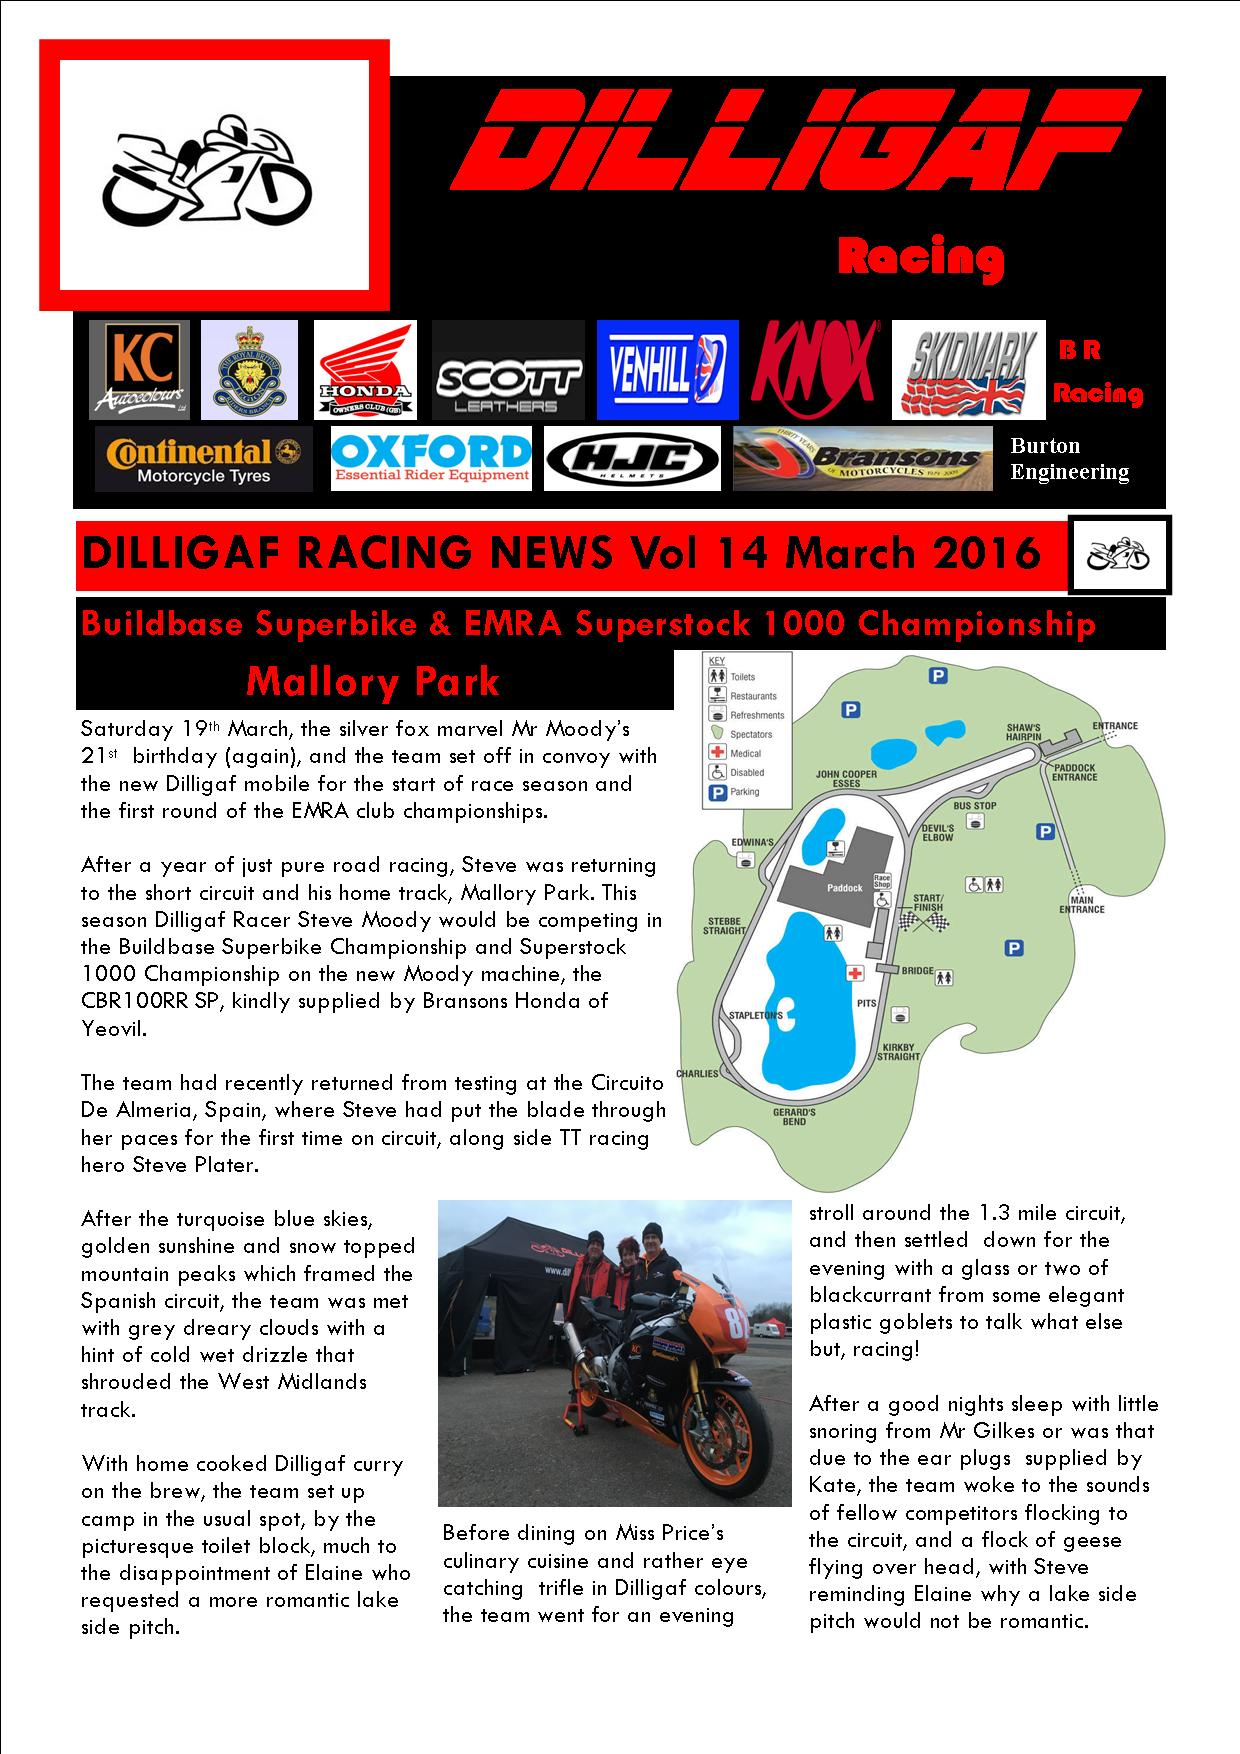 dilligaf racing news vol 14 EMRA superstock championship 2016